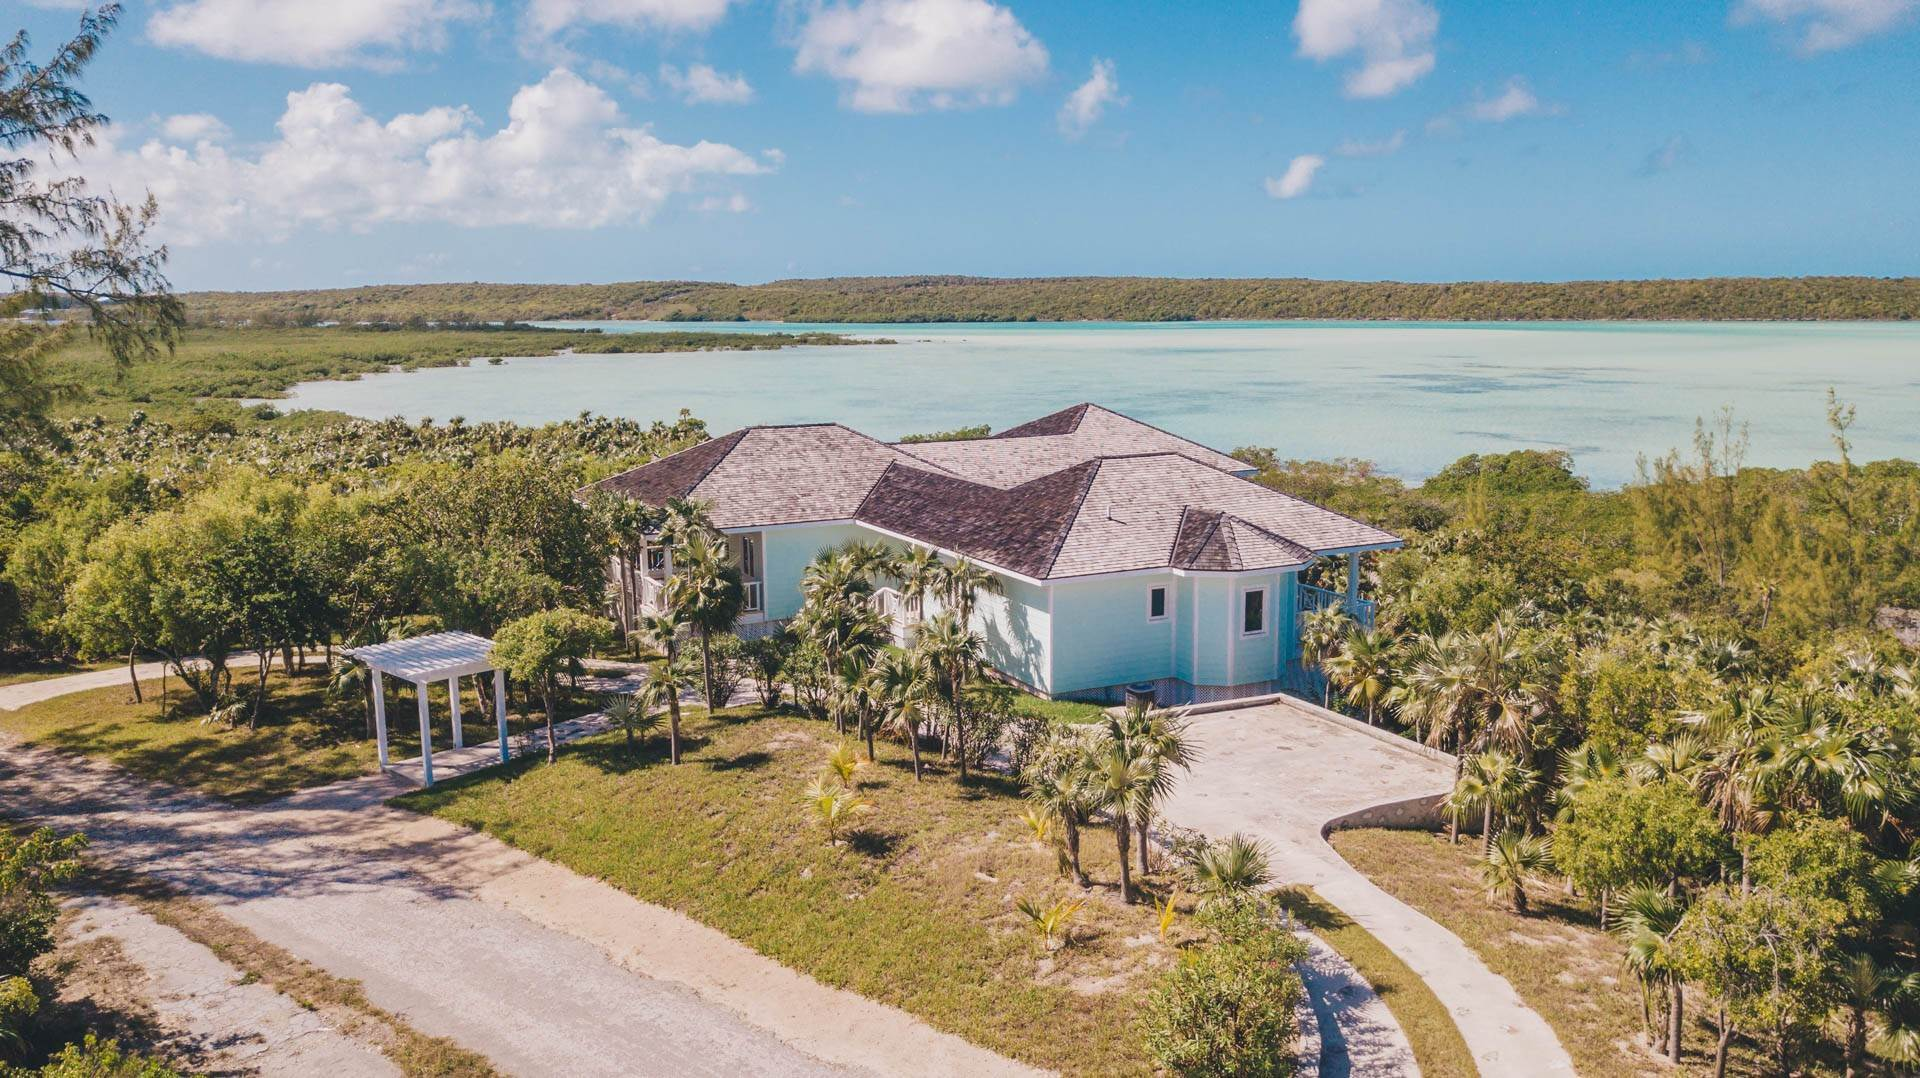 Single Family Homes for Sale at Savannah Sound Home - Windermere Island - MLS 44478 Windermere Island, Eleuthera, Bahamas